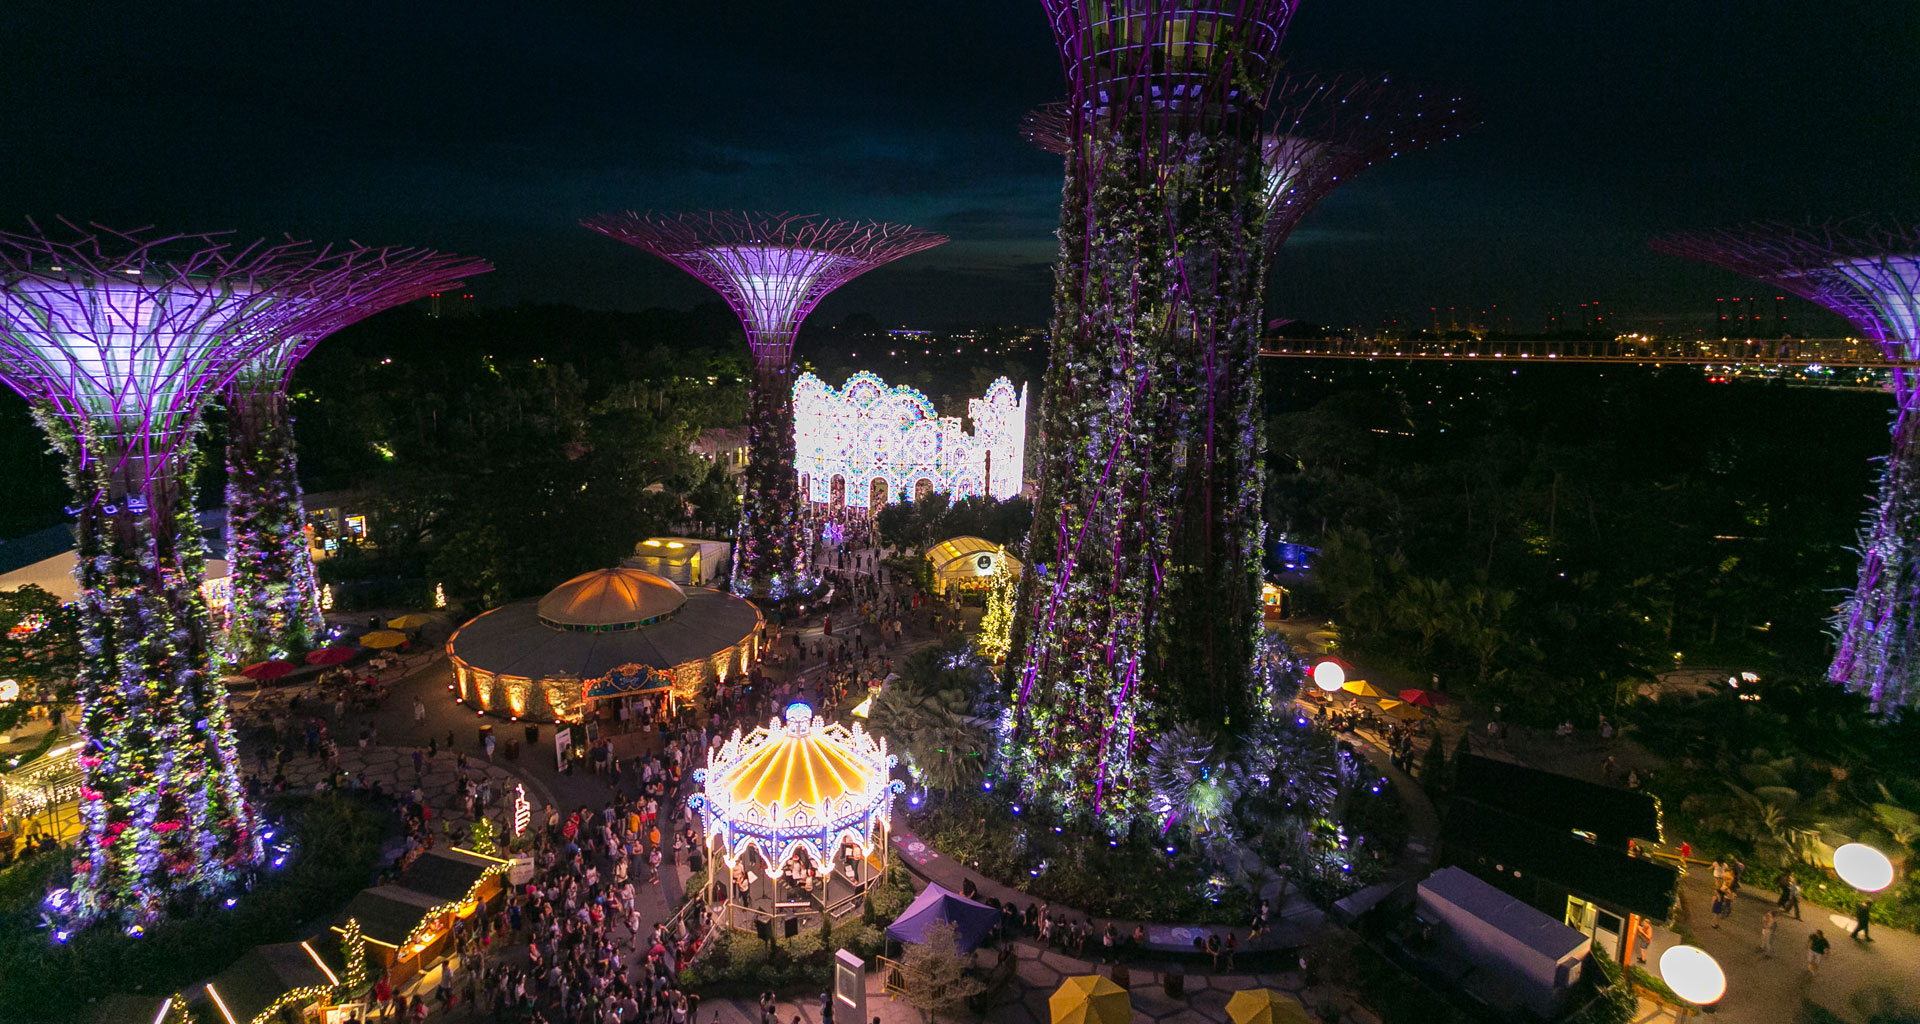 Gardens by the Bay turns into a Christmas Wonderland spectacular this holiday season | Great ...